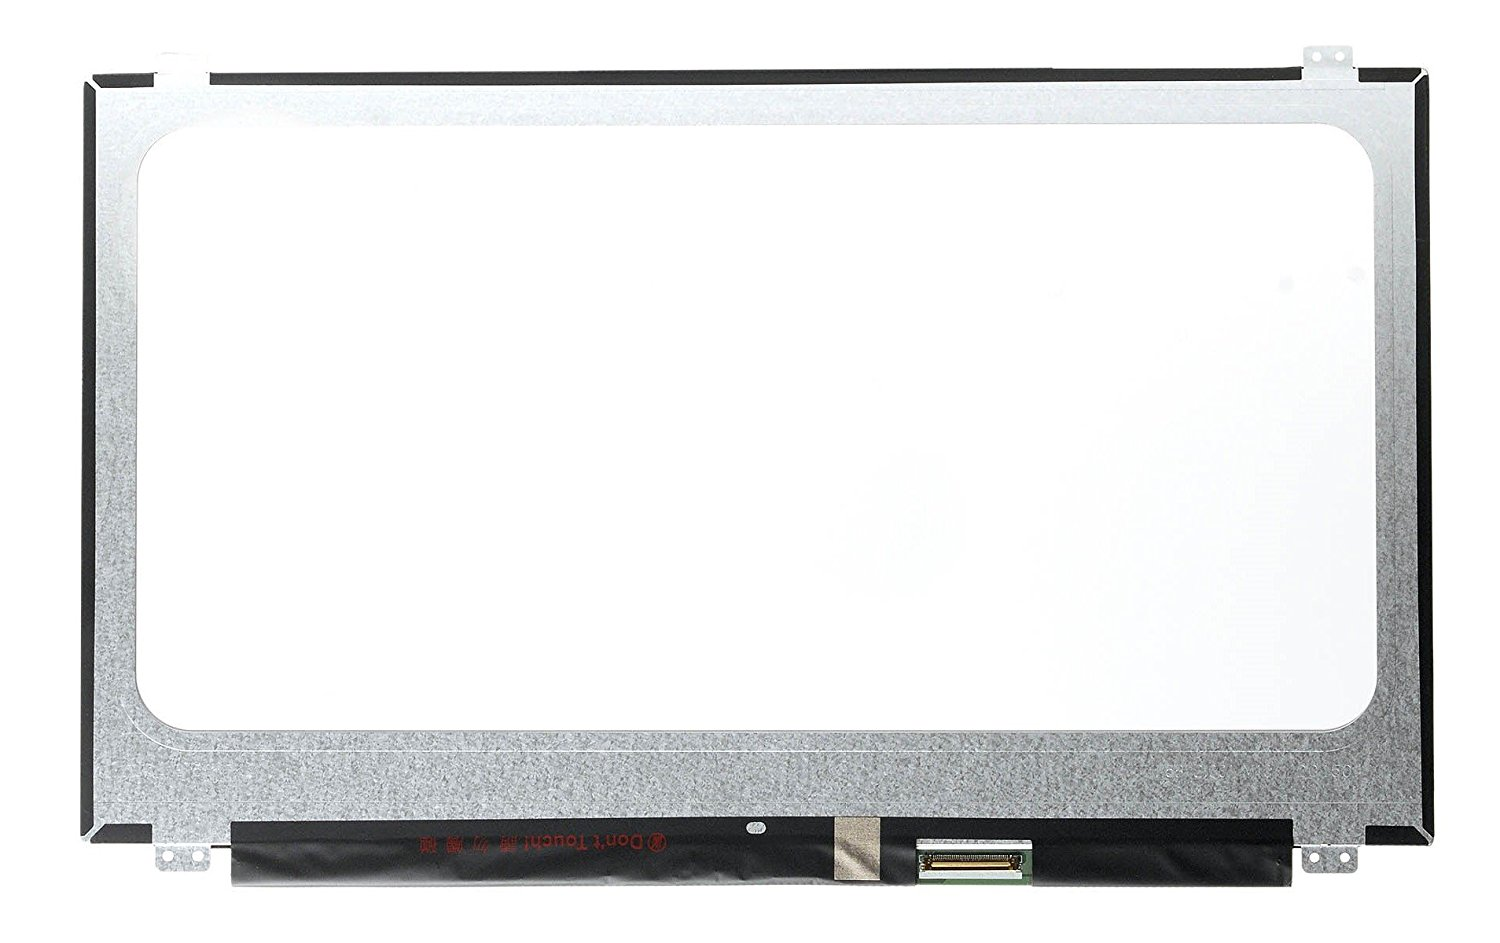 For Dell Inspiron 3558 15.6 LED LCD Touch Screen Display WXGA LTN156AR36-001 dell inspiron 14 5443 5447 5448 5445